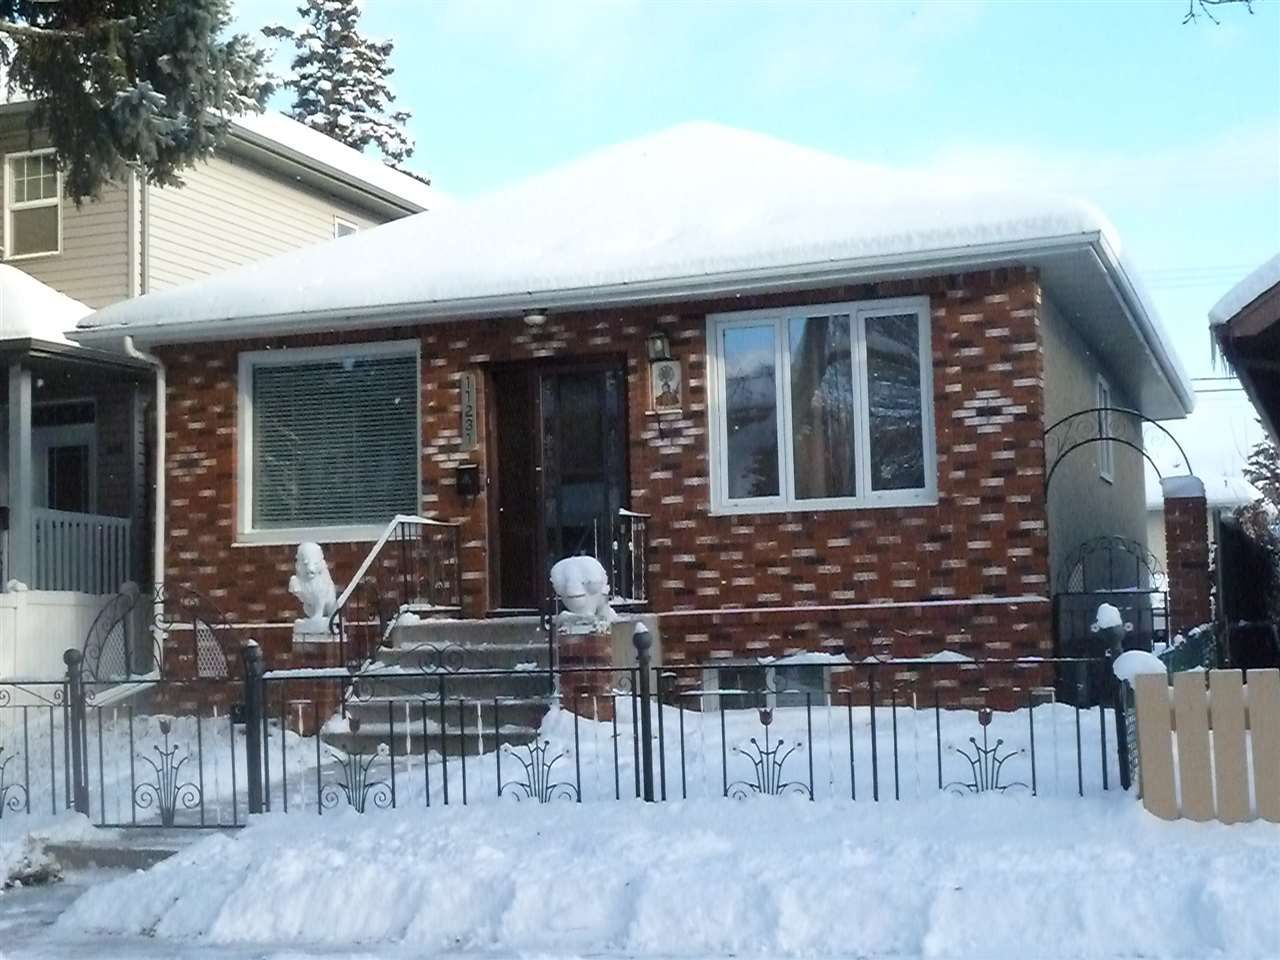 Main Photo: 11231 95A Street in Edmonton: Zone 05 House for sale : MLS®# E4137915